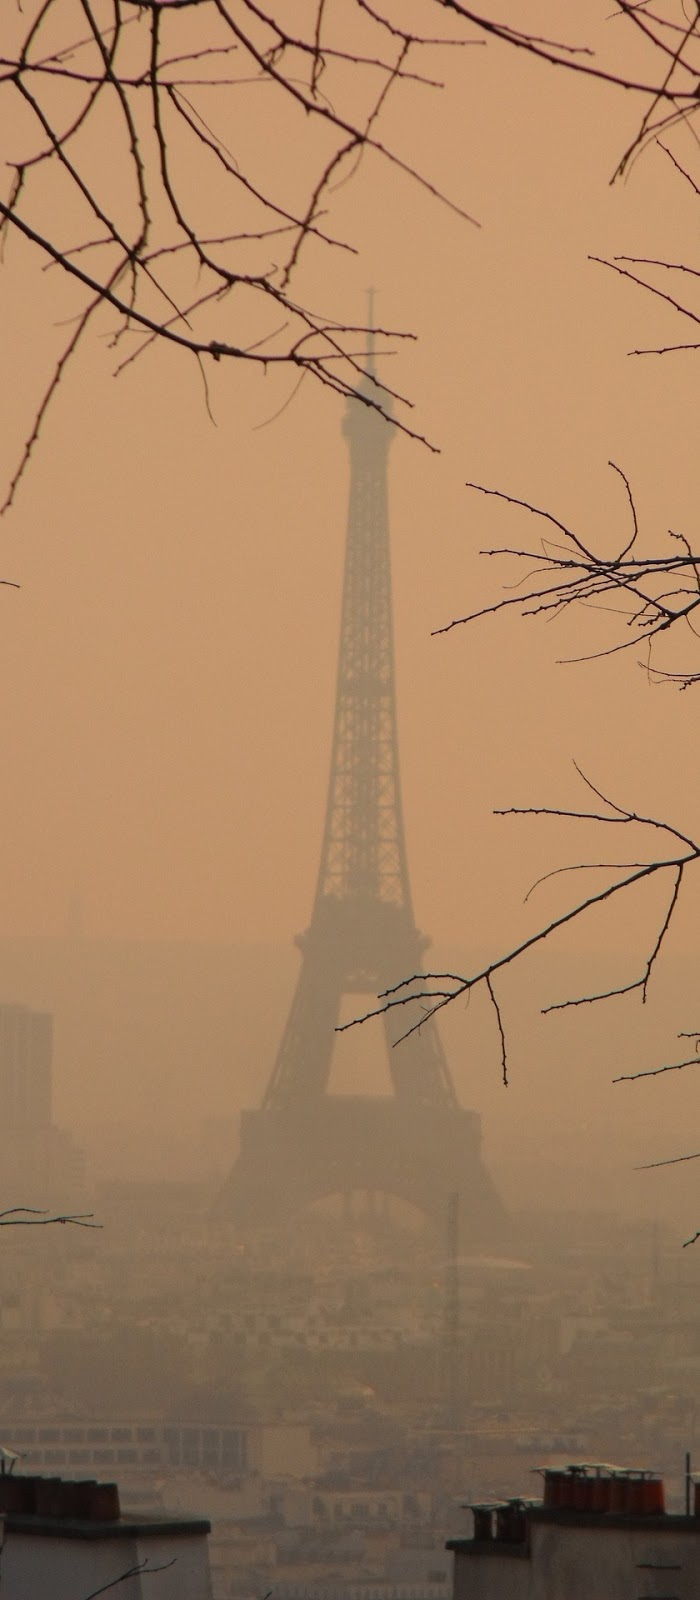 Eiffel Tower covered in smog.